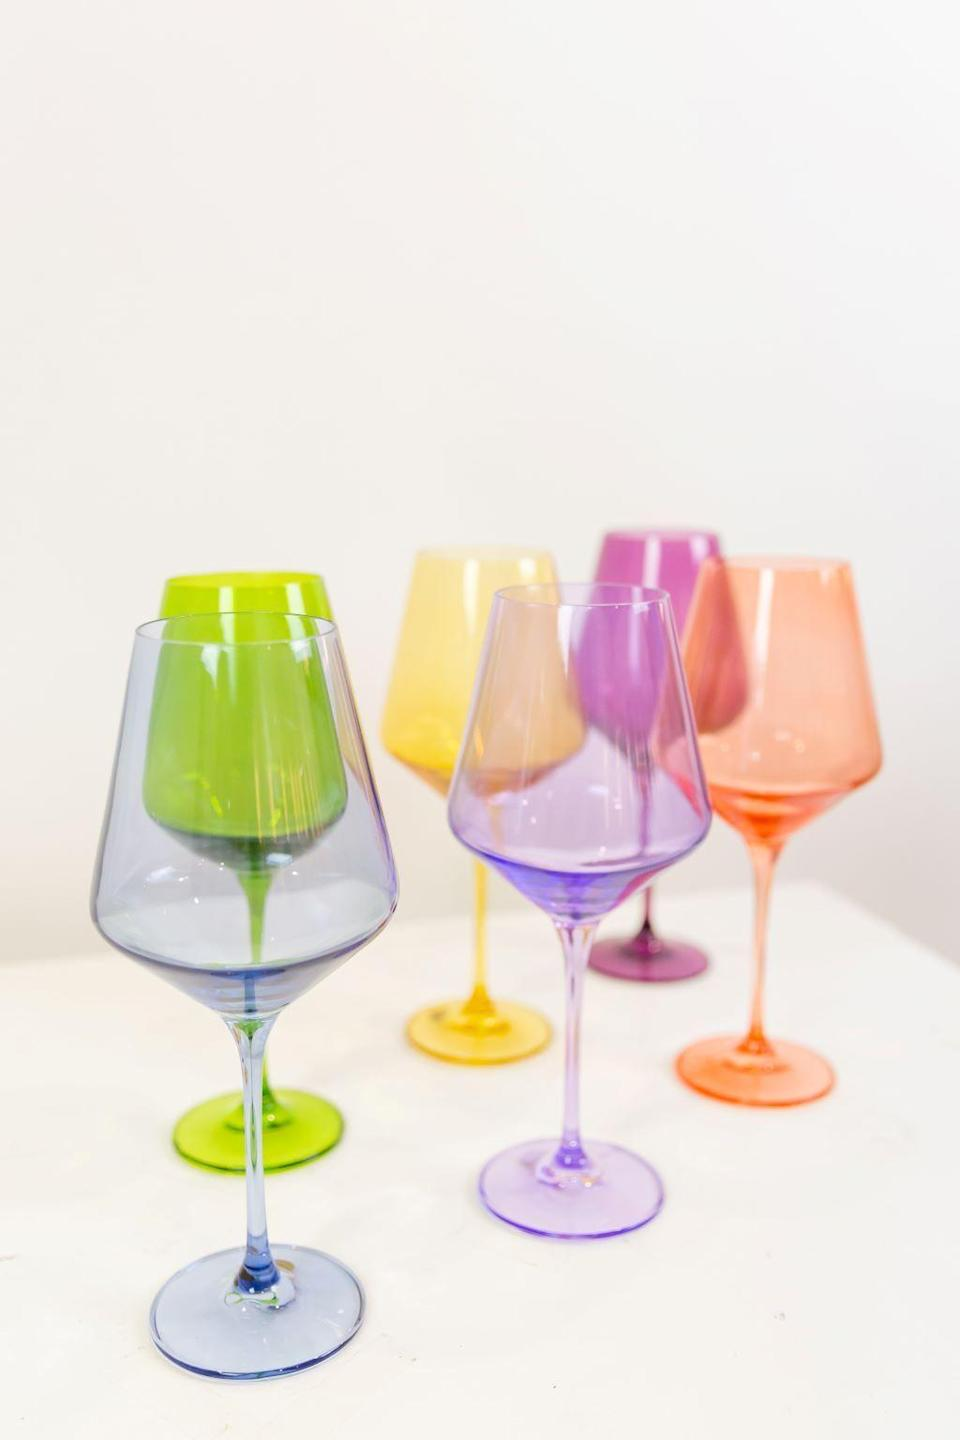 "<p><strong>Estelle</strong></p><p>estellecoloredglass.com</p><p><strong>$175.00</strong></p><p><a href=""https://www.estellecoloredglass.com/collections/glassware/products/estelle-colored-wine-stemware-mixed-set"" rel=""nofollow noopener"" target=""_blank"" data-ylk=""slk:SHOP IT"" class=""link rapid-noclick-resp"">SHOP IT</a></p><p>Make drinking wine twice as fun and lively with this set of six glasses featuring a variety of vibrant colors. They are hand blown by glass artisans in Poland (fancy) and will instantly brighten up your bar cart or kitchen cupboards. </p>"